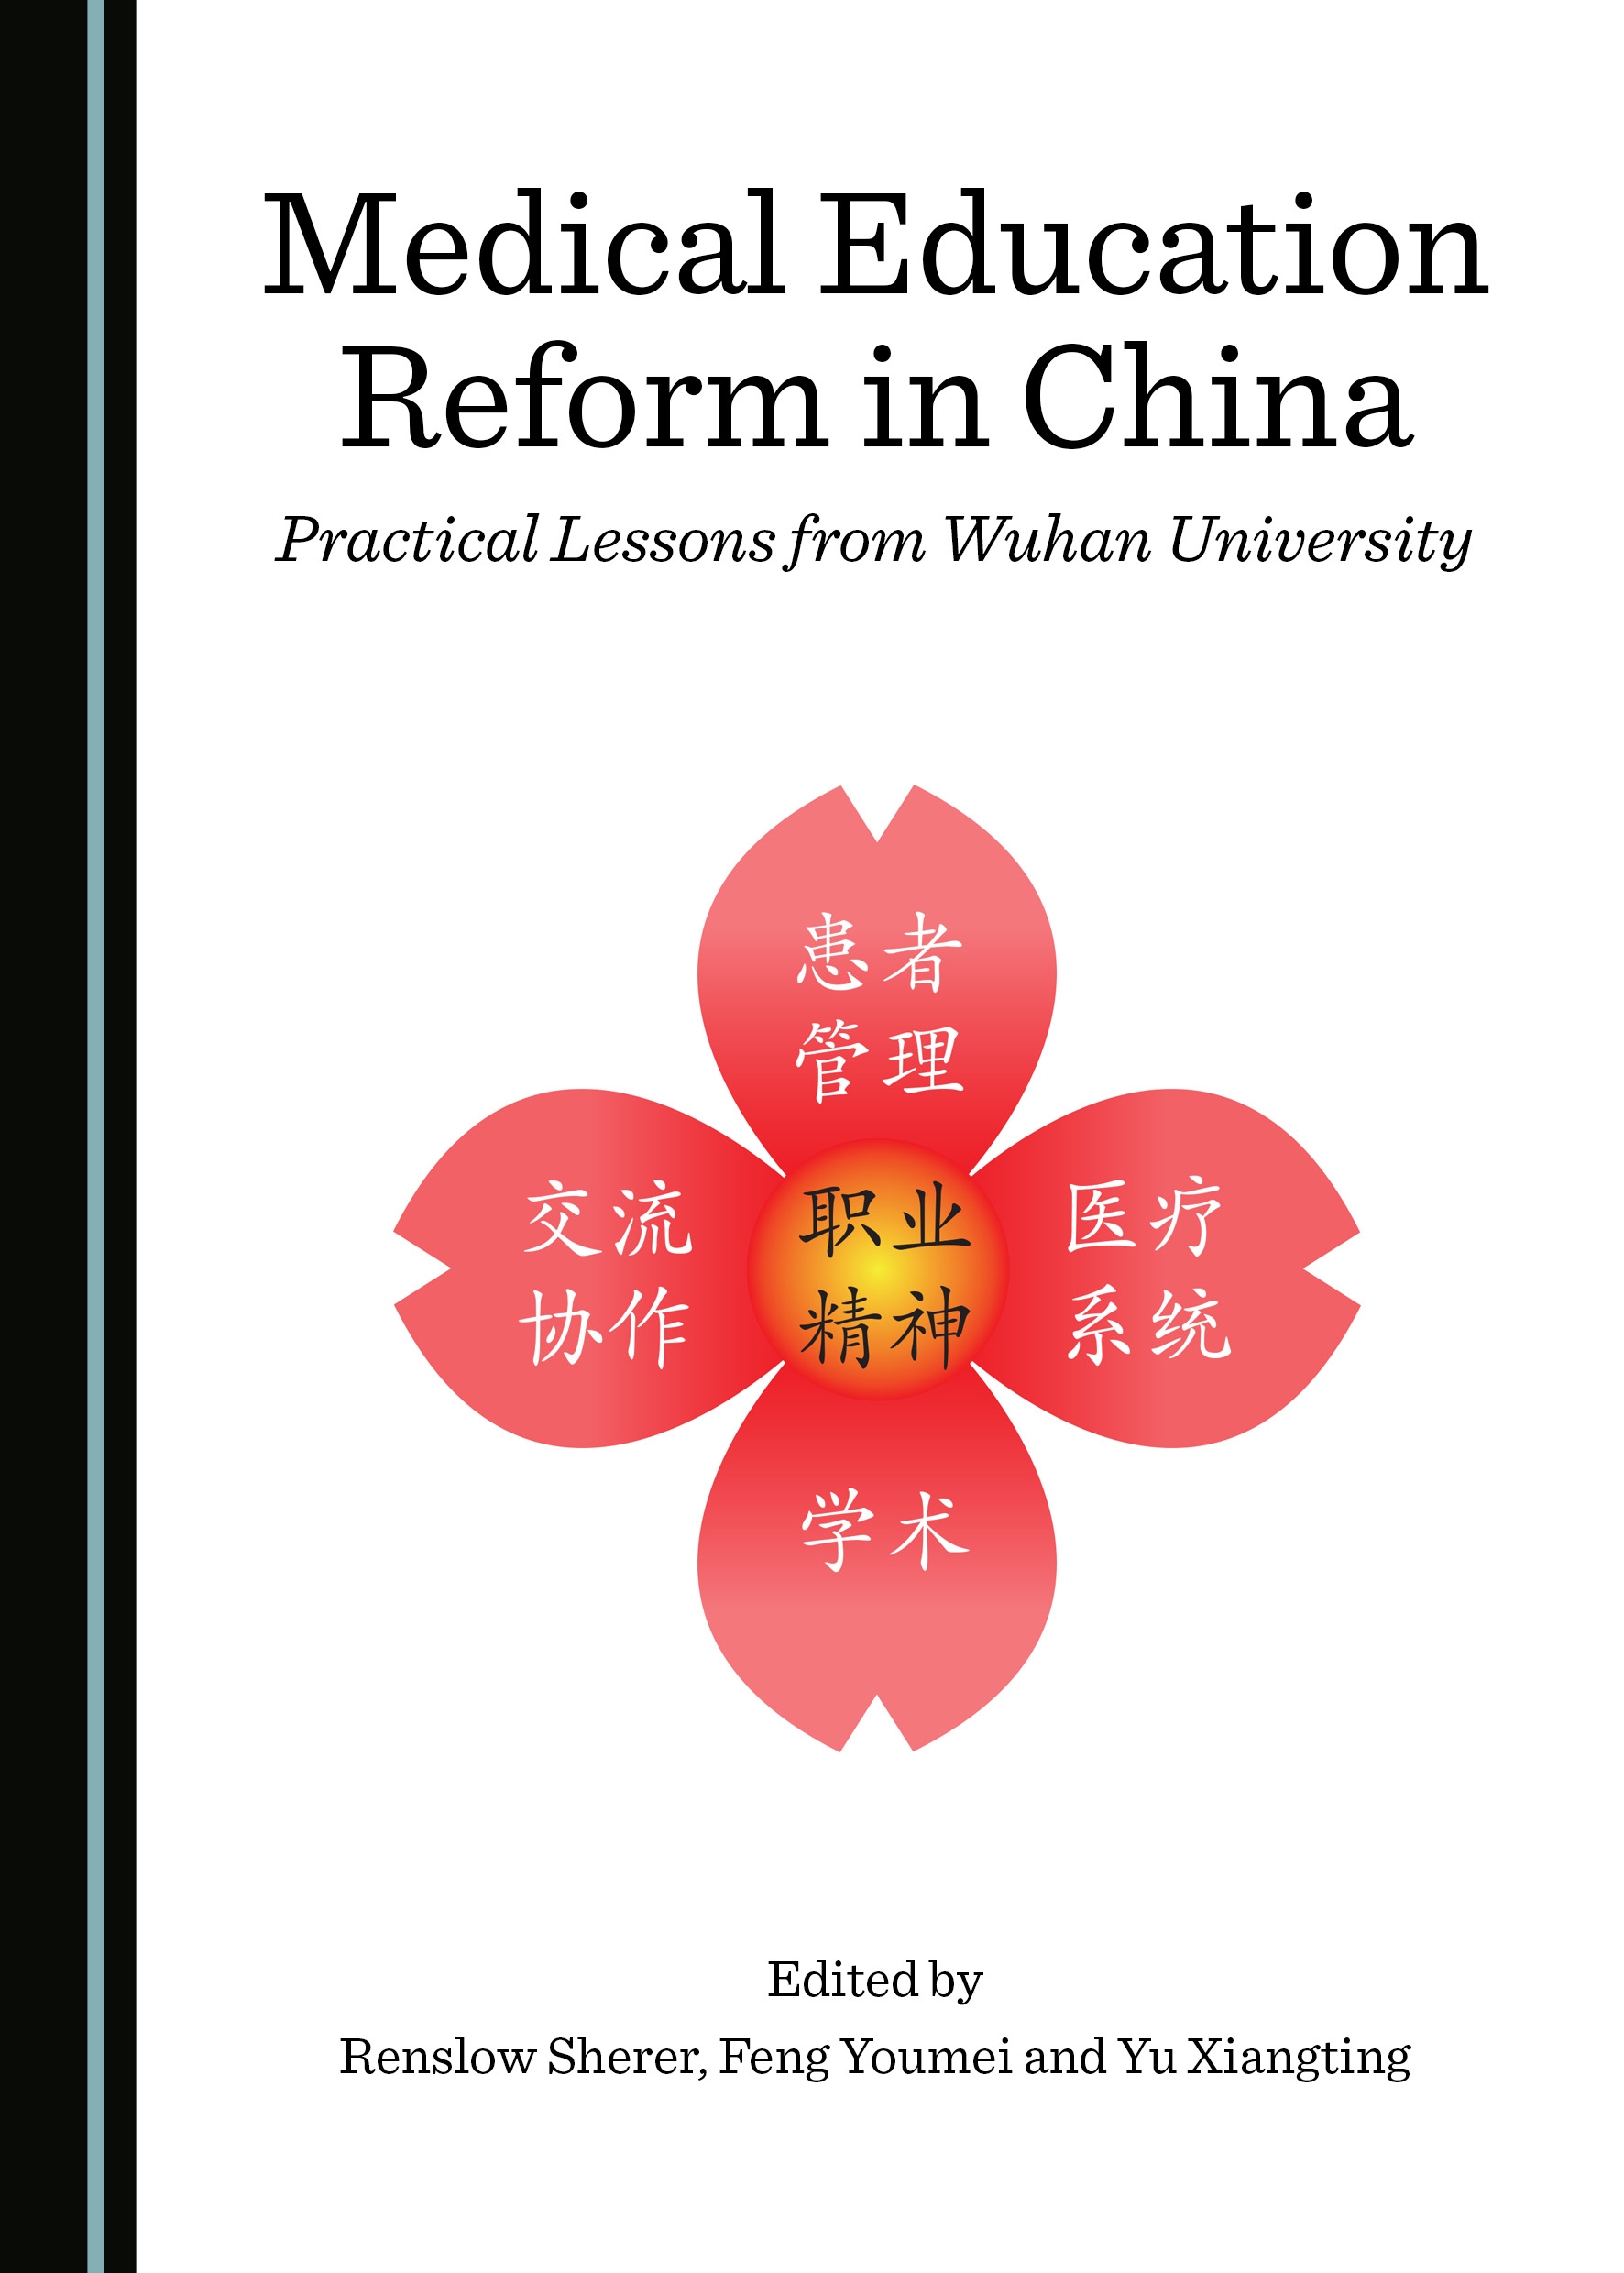 Medical Education Reform in China: Practical Lessons from Wuhan University